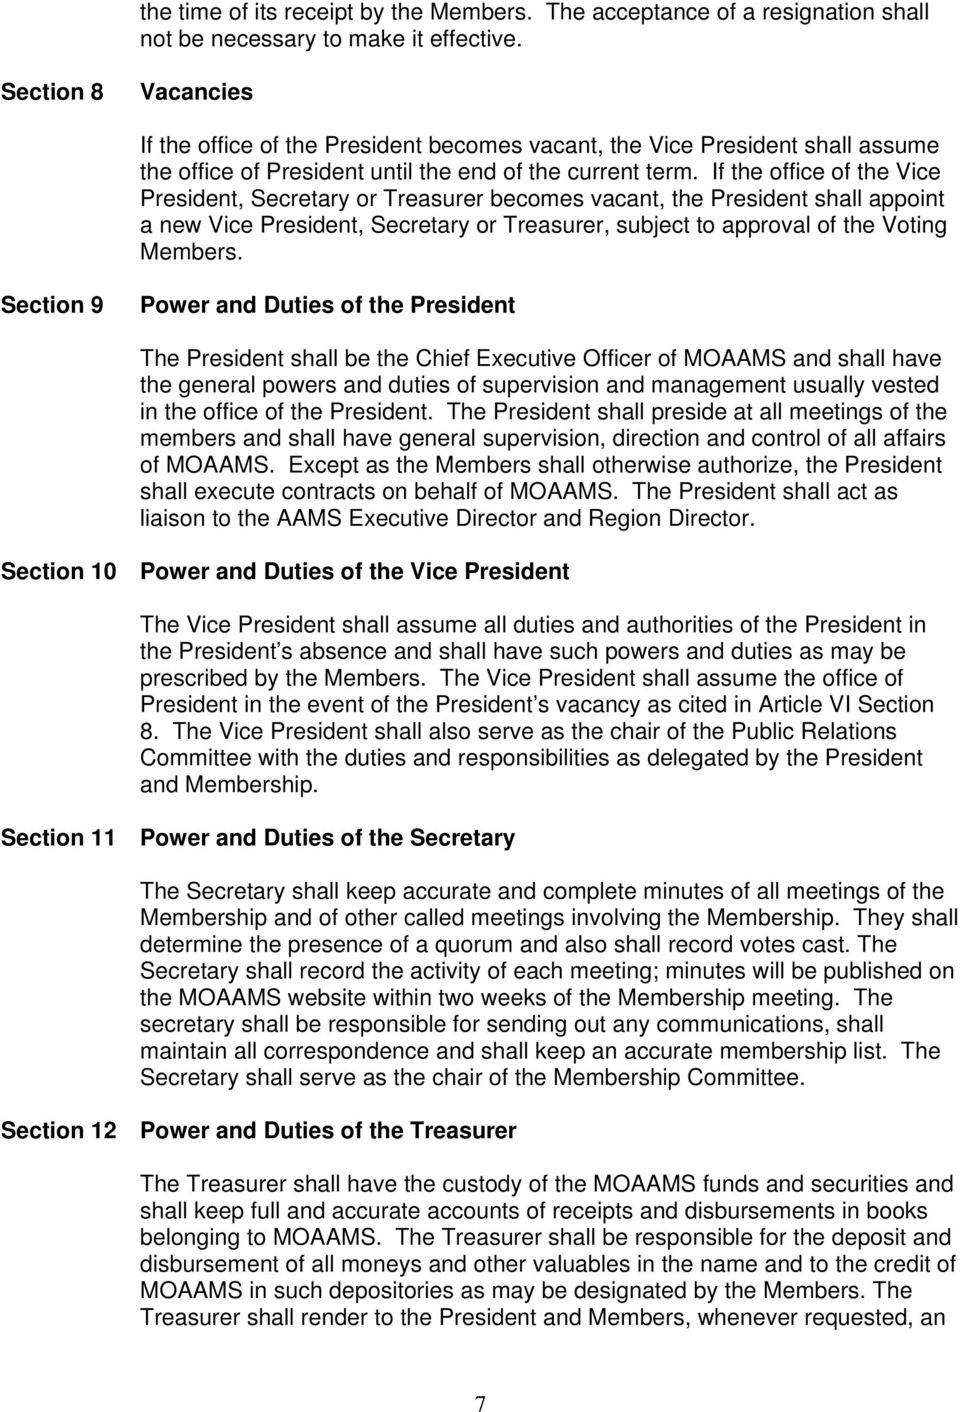 If the office of the Vice President, Secretary or Treasurer becomes vacant, the President shall appoint a new Vice President, Secretary or Treasurer, subject to approval of the Voting Members.